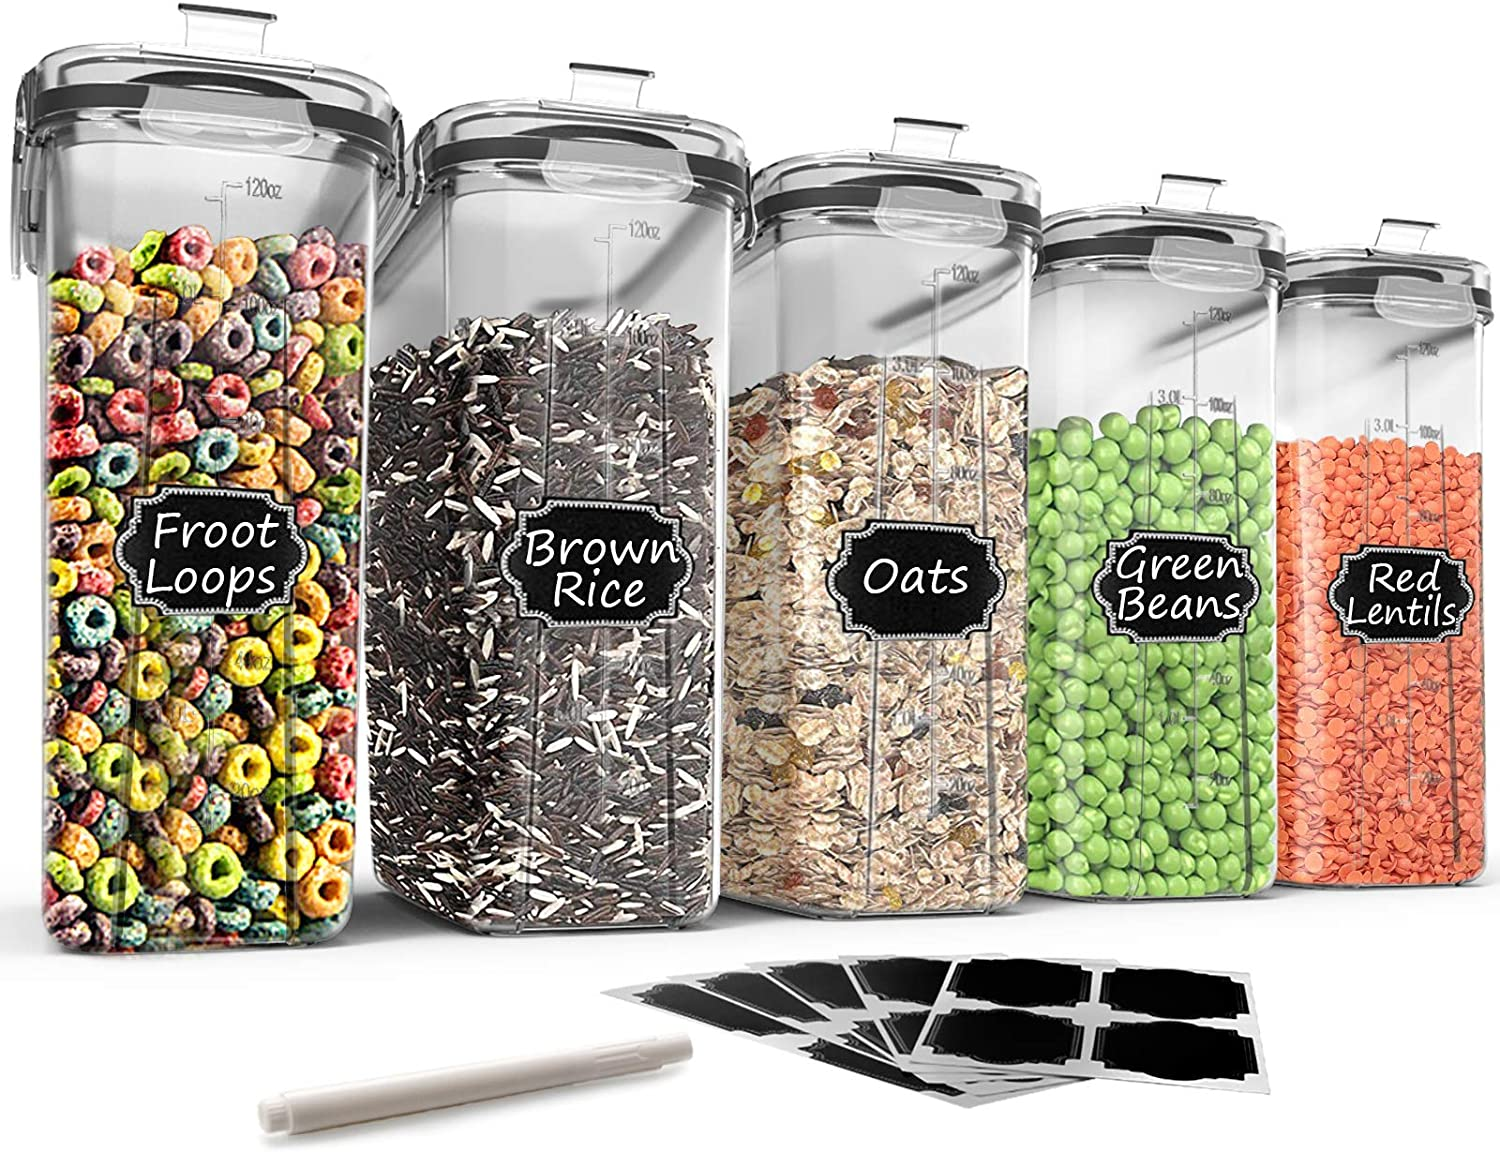 Large Cereal & Dry Food Storage Containers - Wildone 5 Pieces Airtight Cereal Storage Containers for Sugar, Flour, Snack, Baking Supplies, Leak-proof with Black Locking Lids (4L /135.3oz)